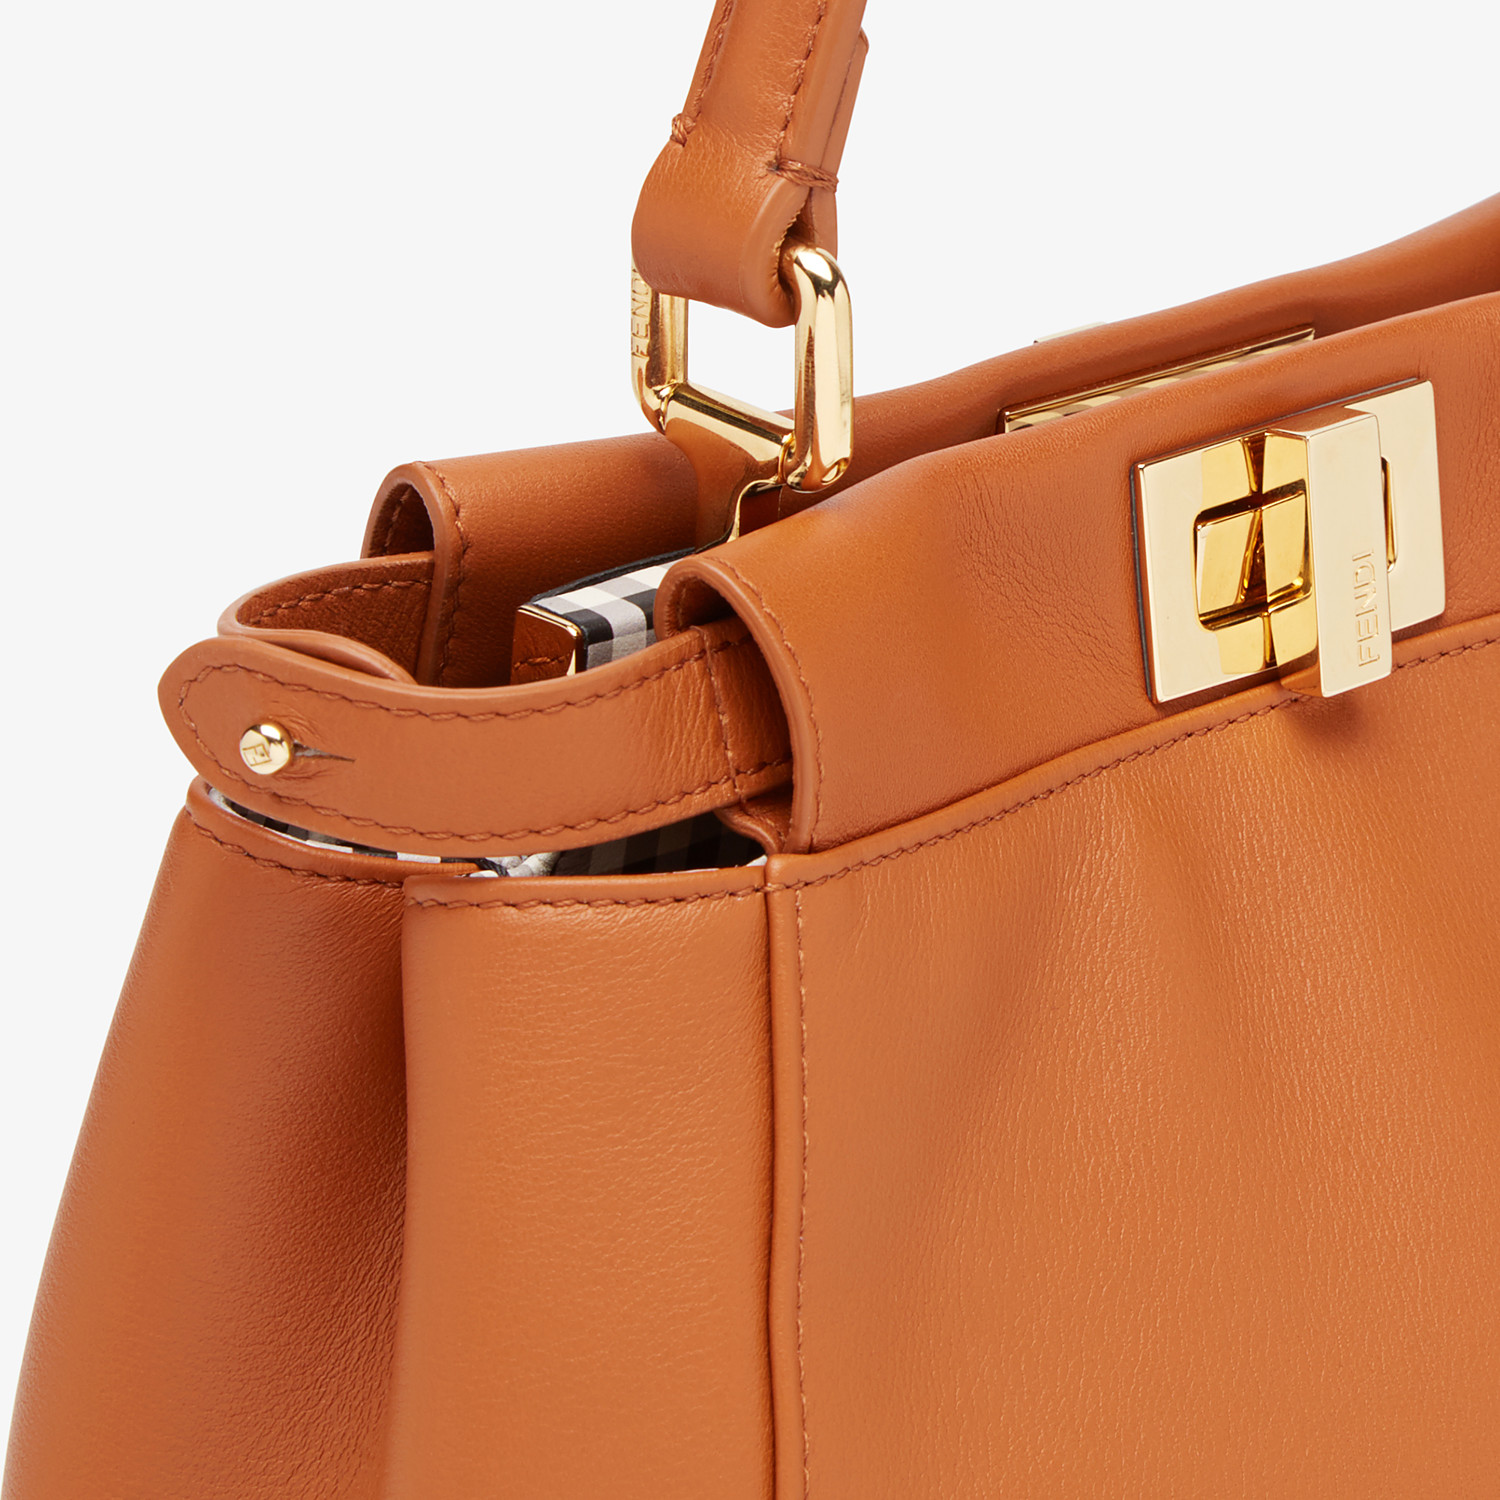 FENDI PEEKABOO ICONIC MINI - Brown nappa leather bag - view 6 detail